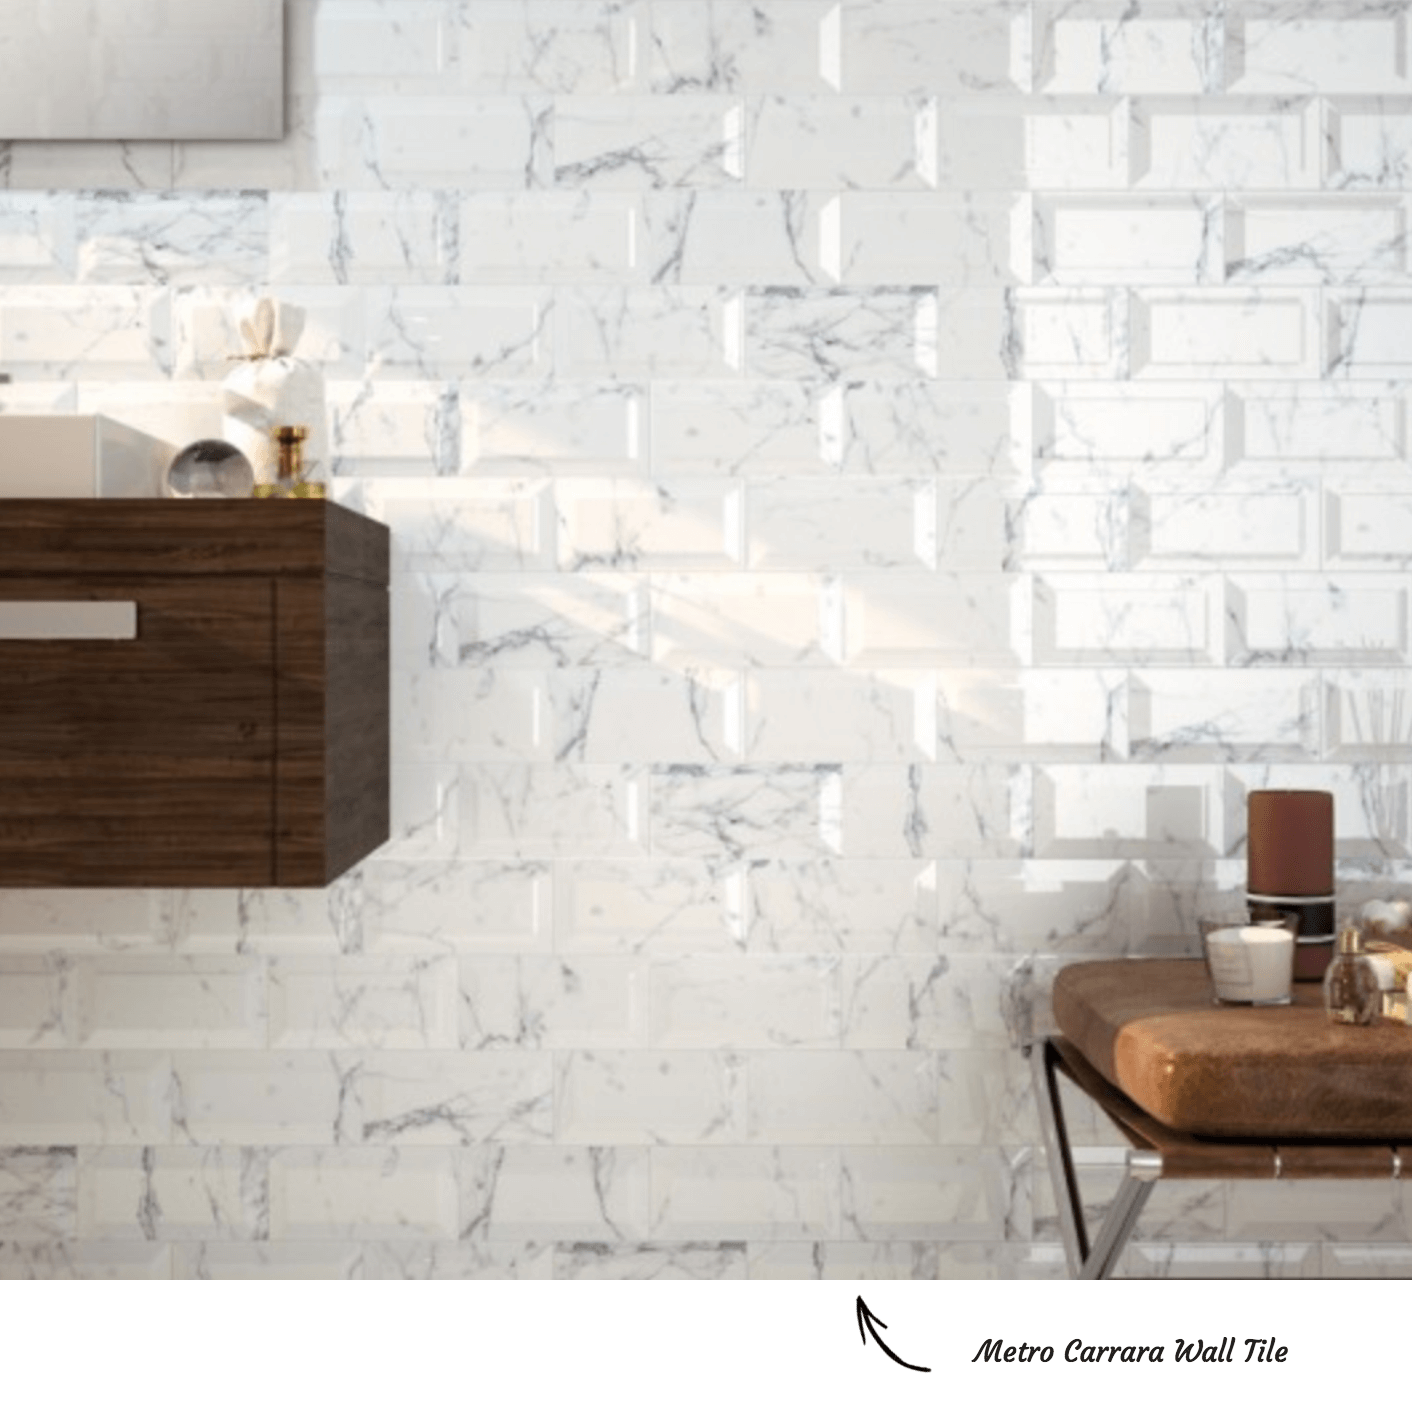 Metro Carrara Brick Bond Tile Pattern